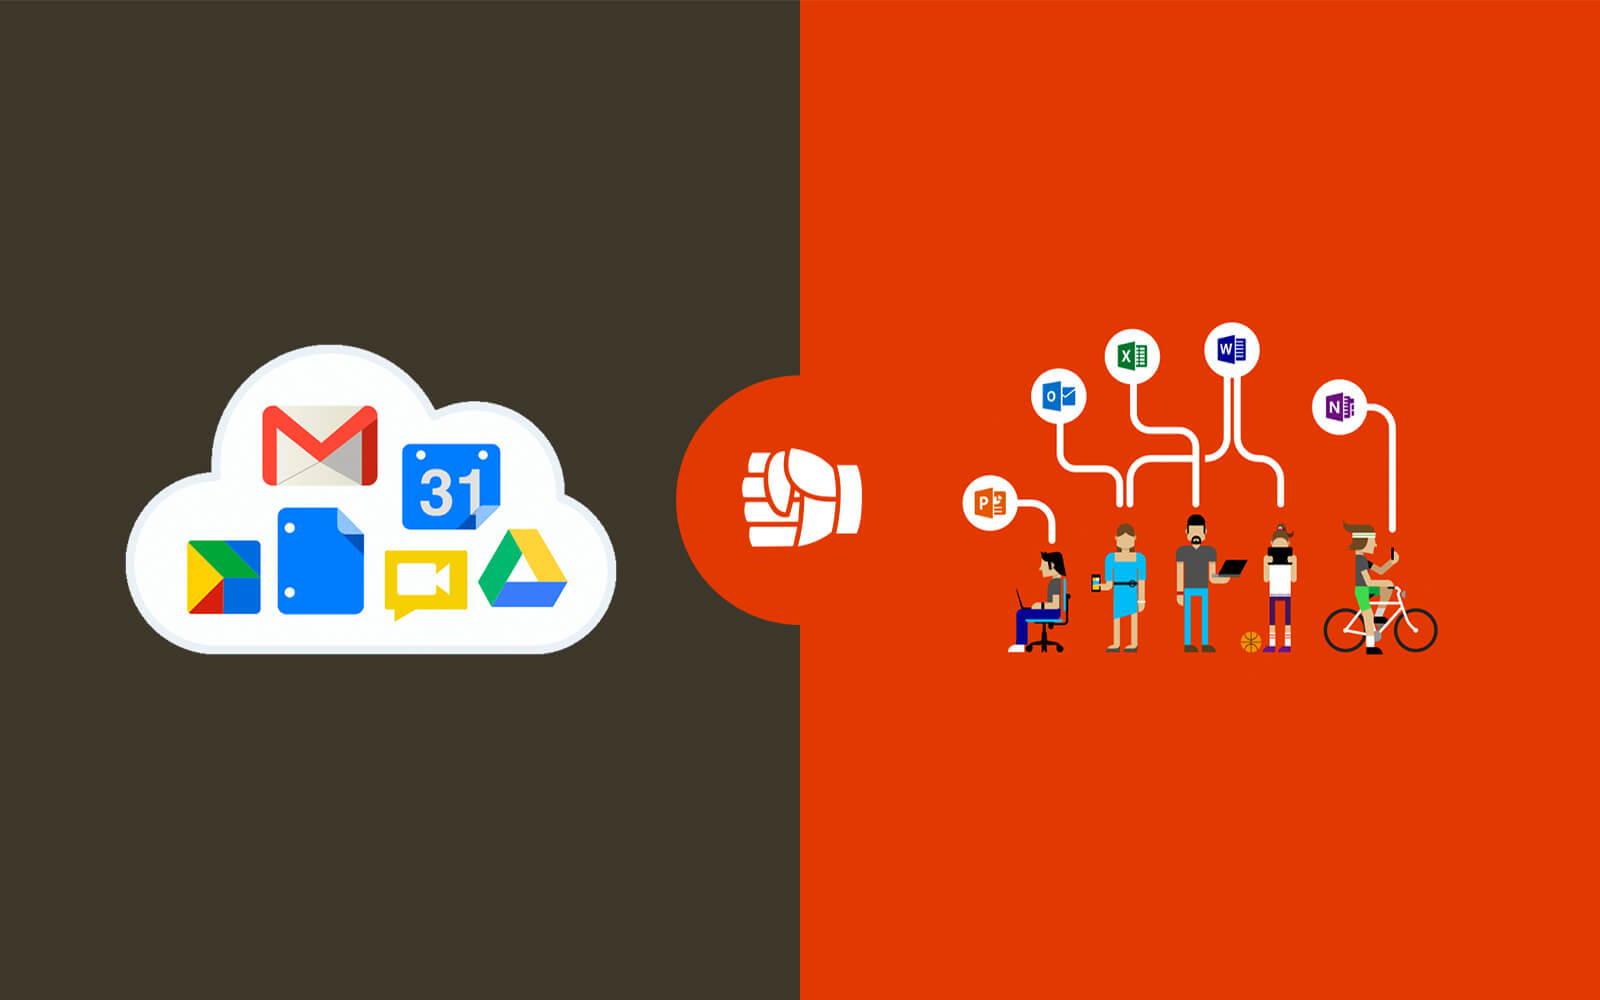 Office 365 groter dan Google Apps